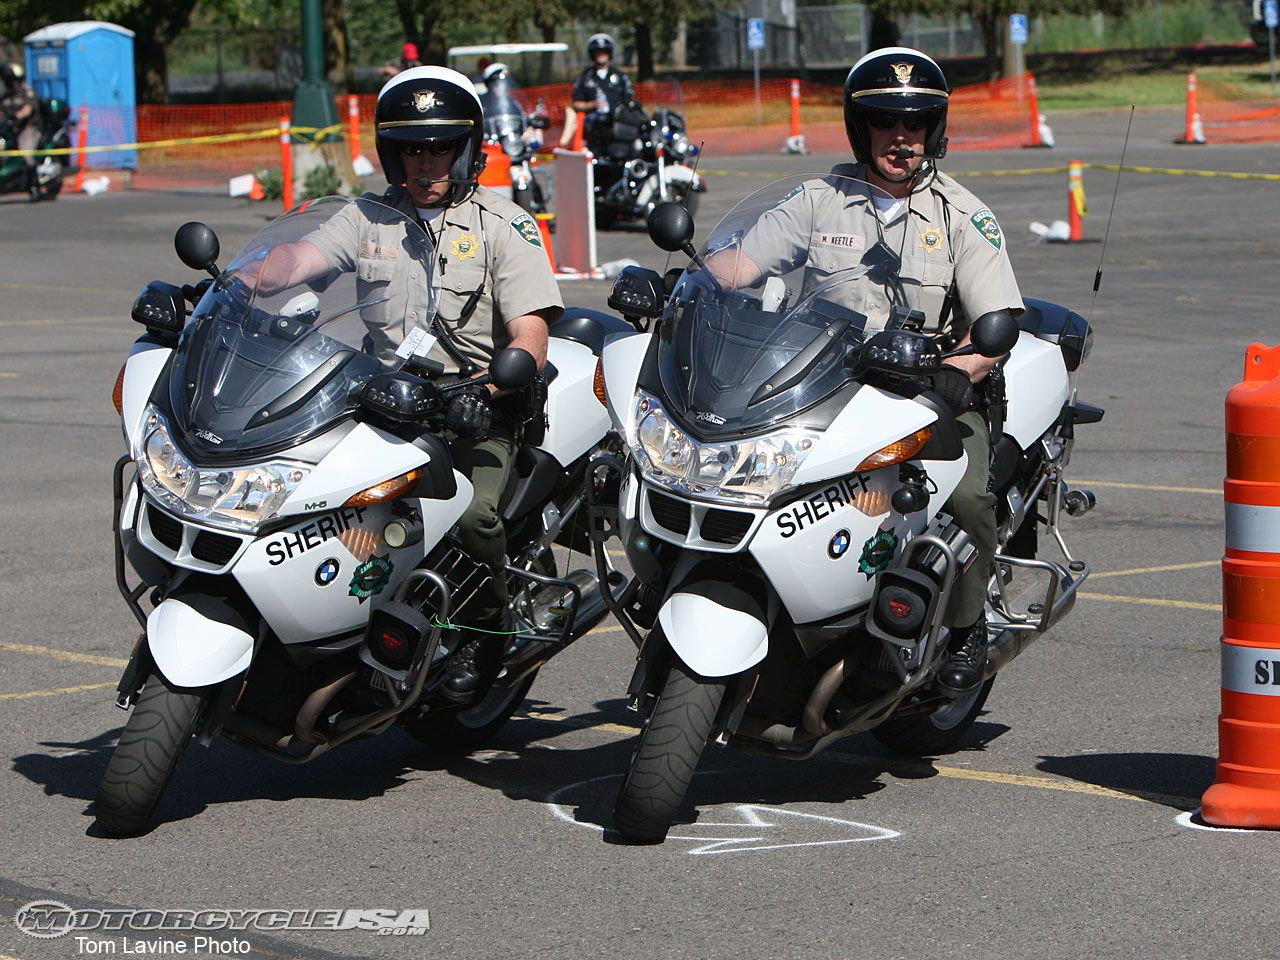 medium resolution of google image result for http images motorcycle usa com